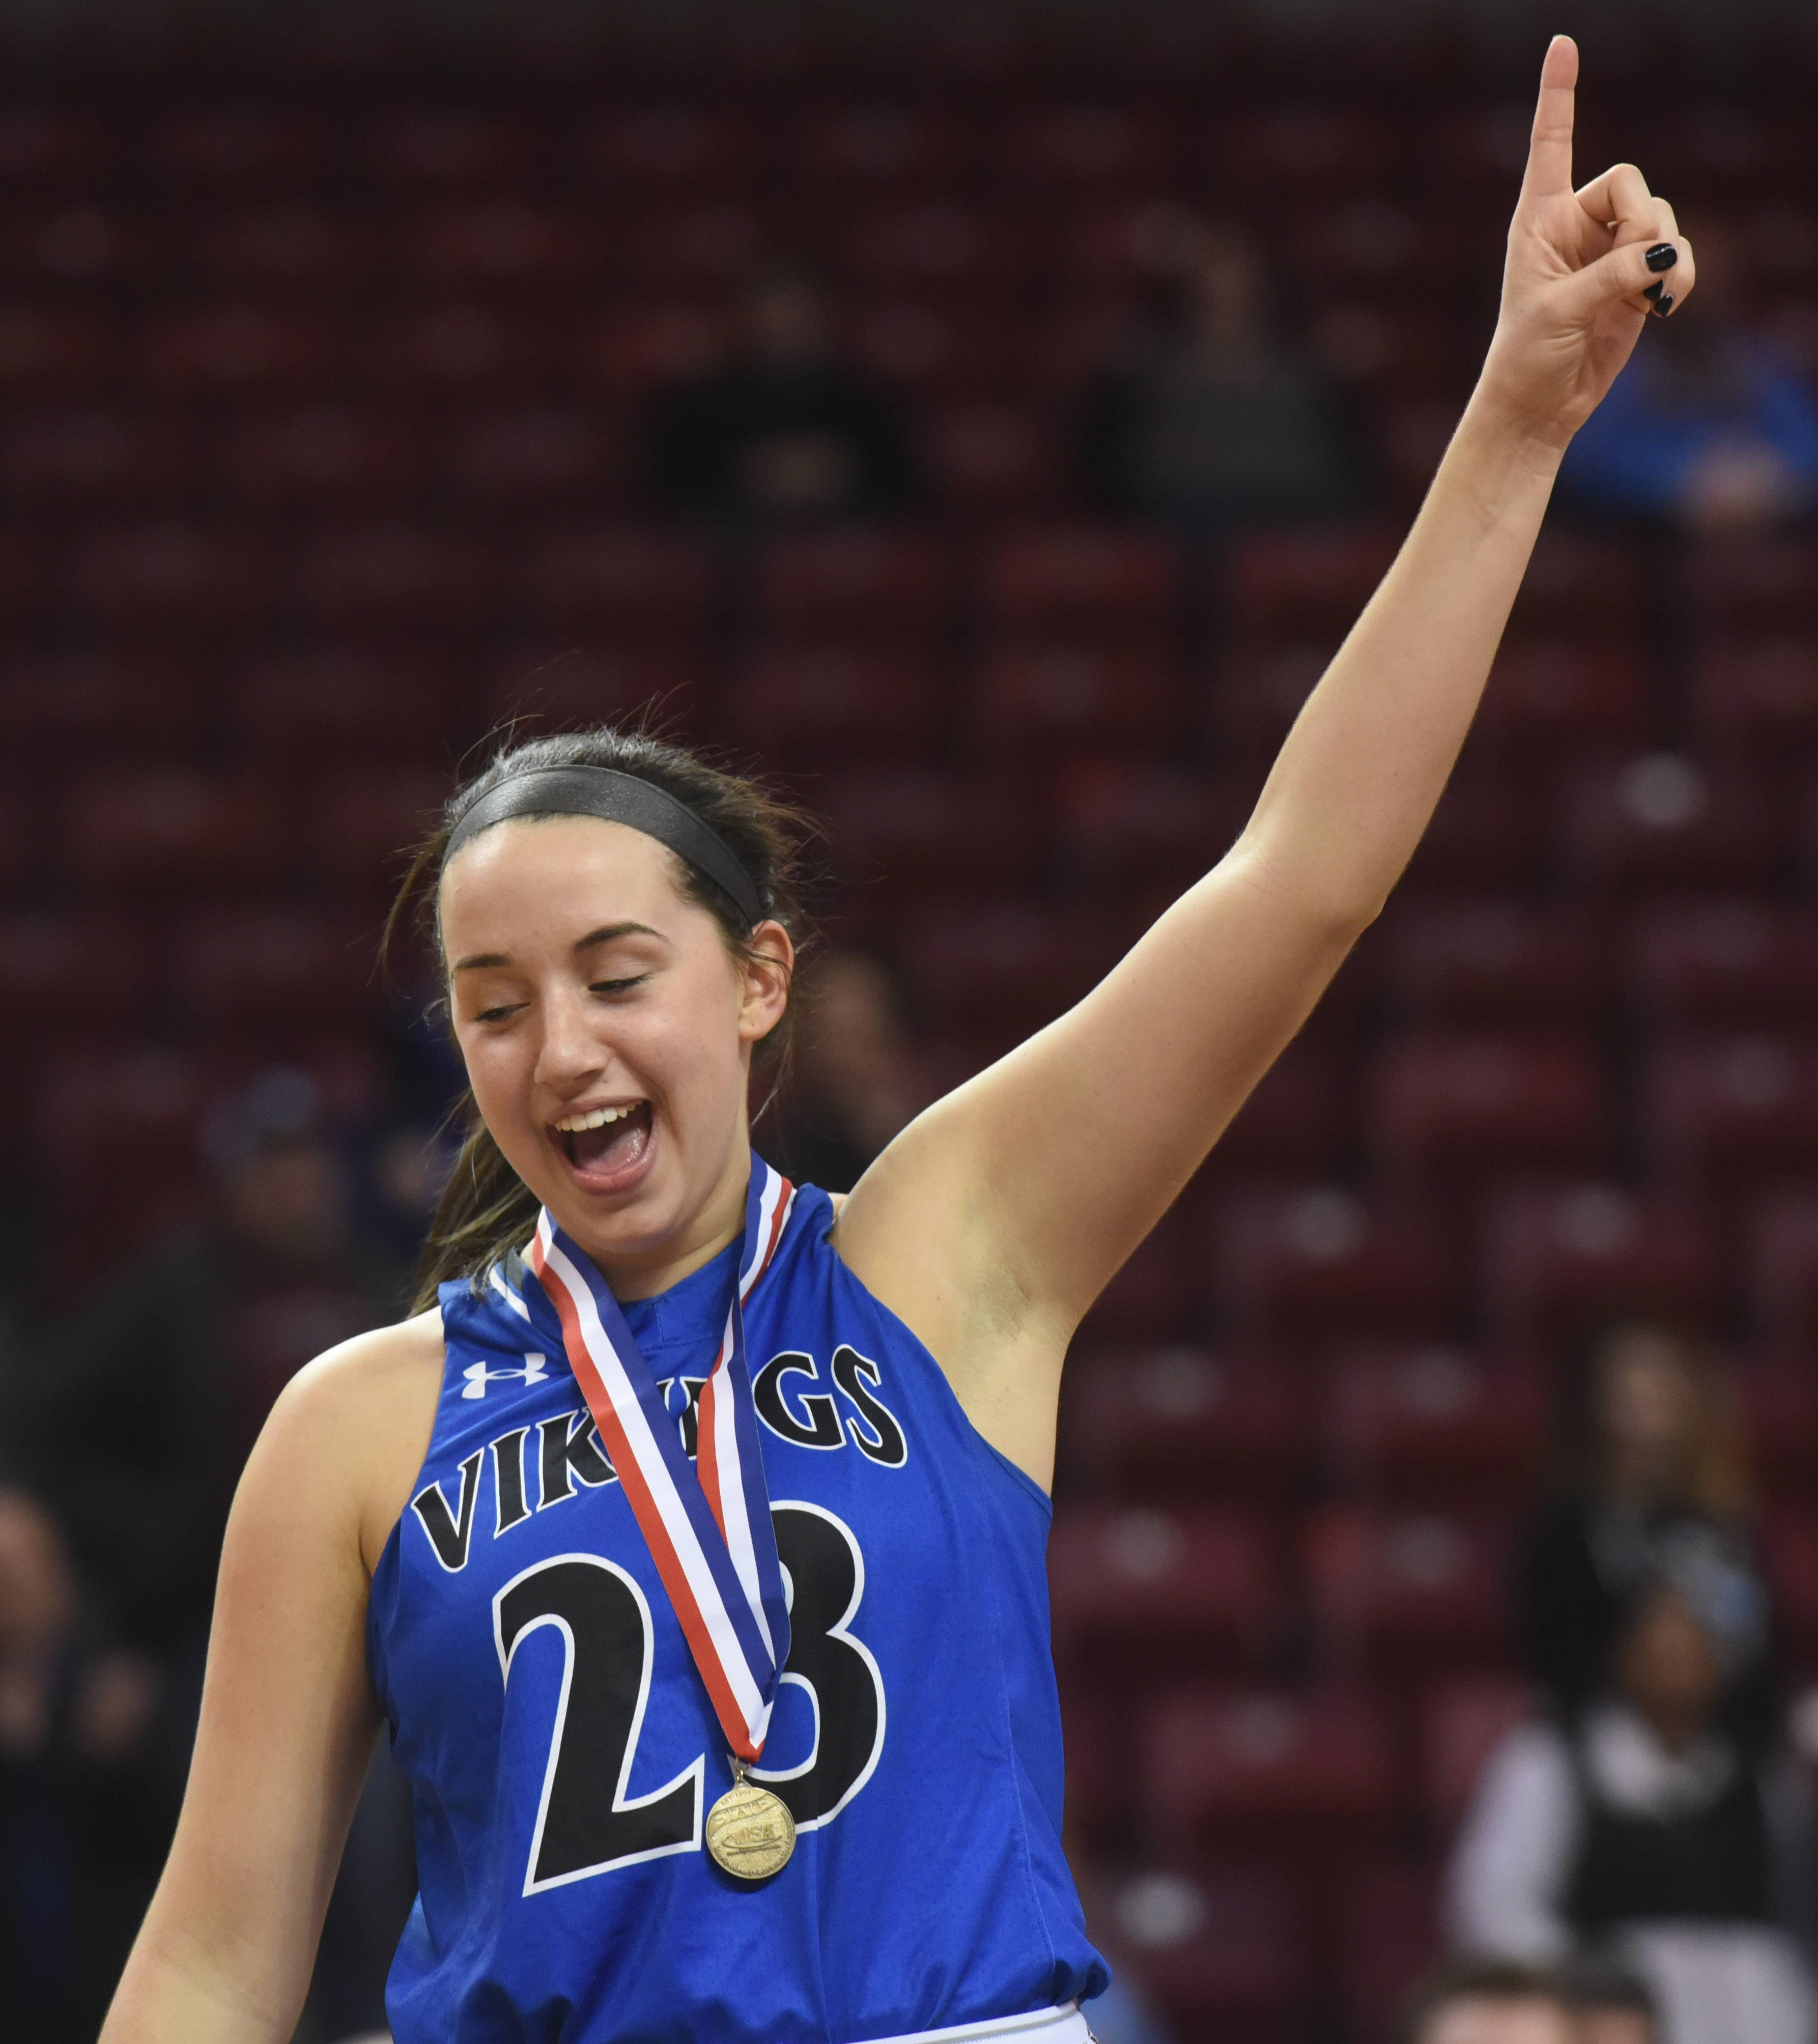 Geneva's Margaret Whitely celebrates after receiving her medal after the Vikings defeated Montini 28-26 during the girls basketball Class 4A title game at Redbird Arena in Normal Saturday.